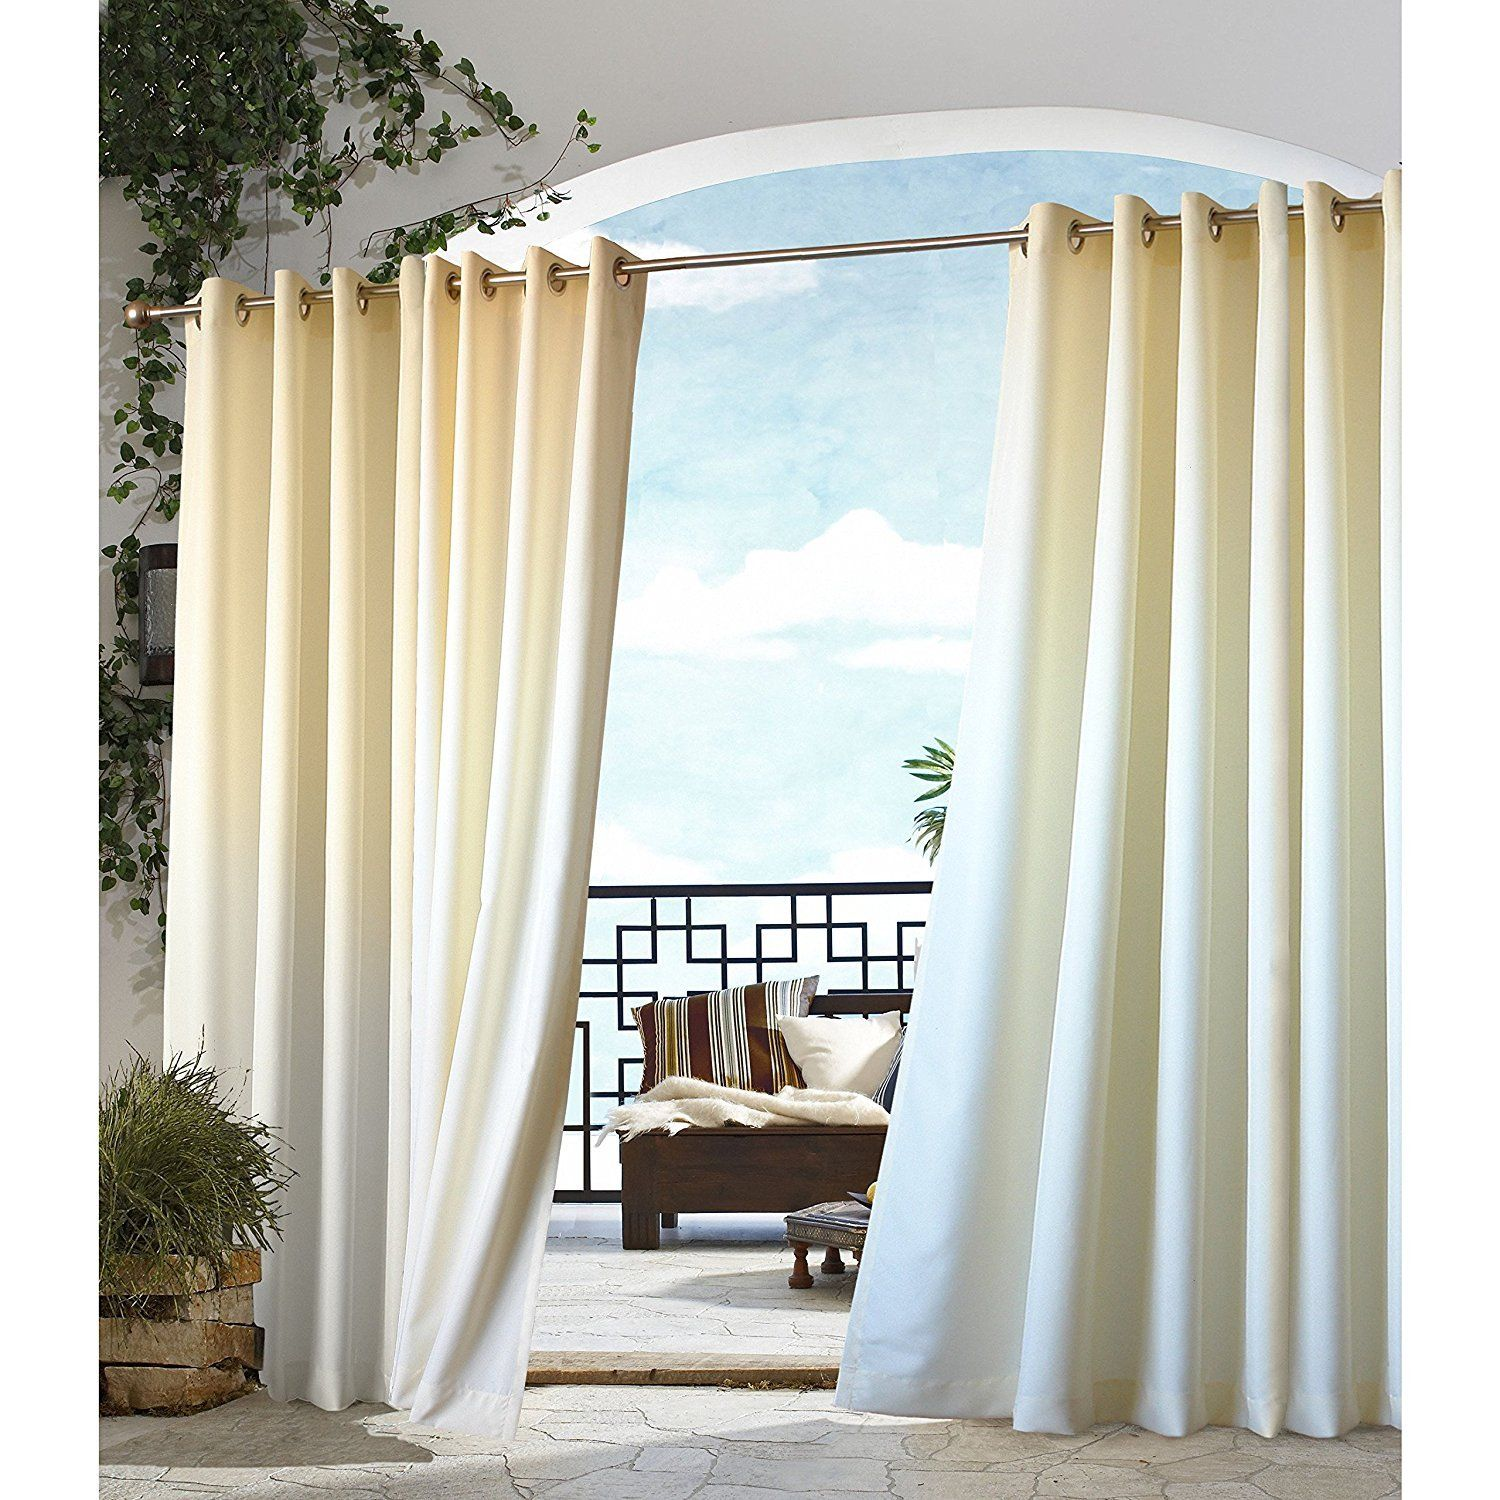 84 Inch Outdoor Natural Gazebo Curtain Light Yellow Color Outside Window Treatment Single Indoor Patio Porch